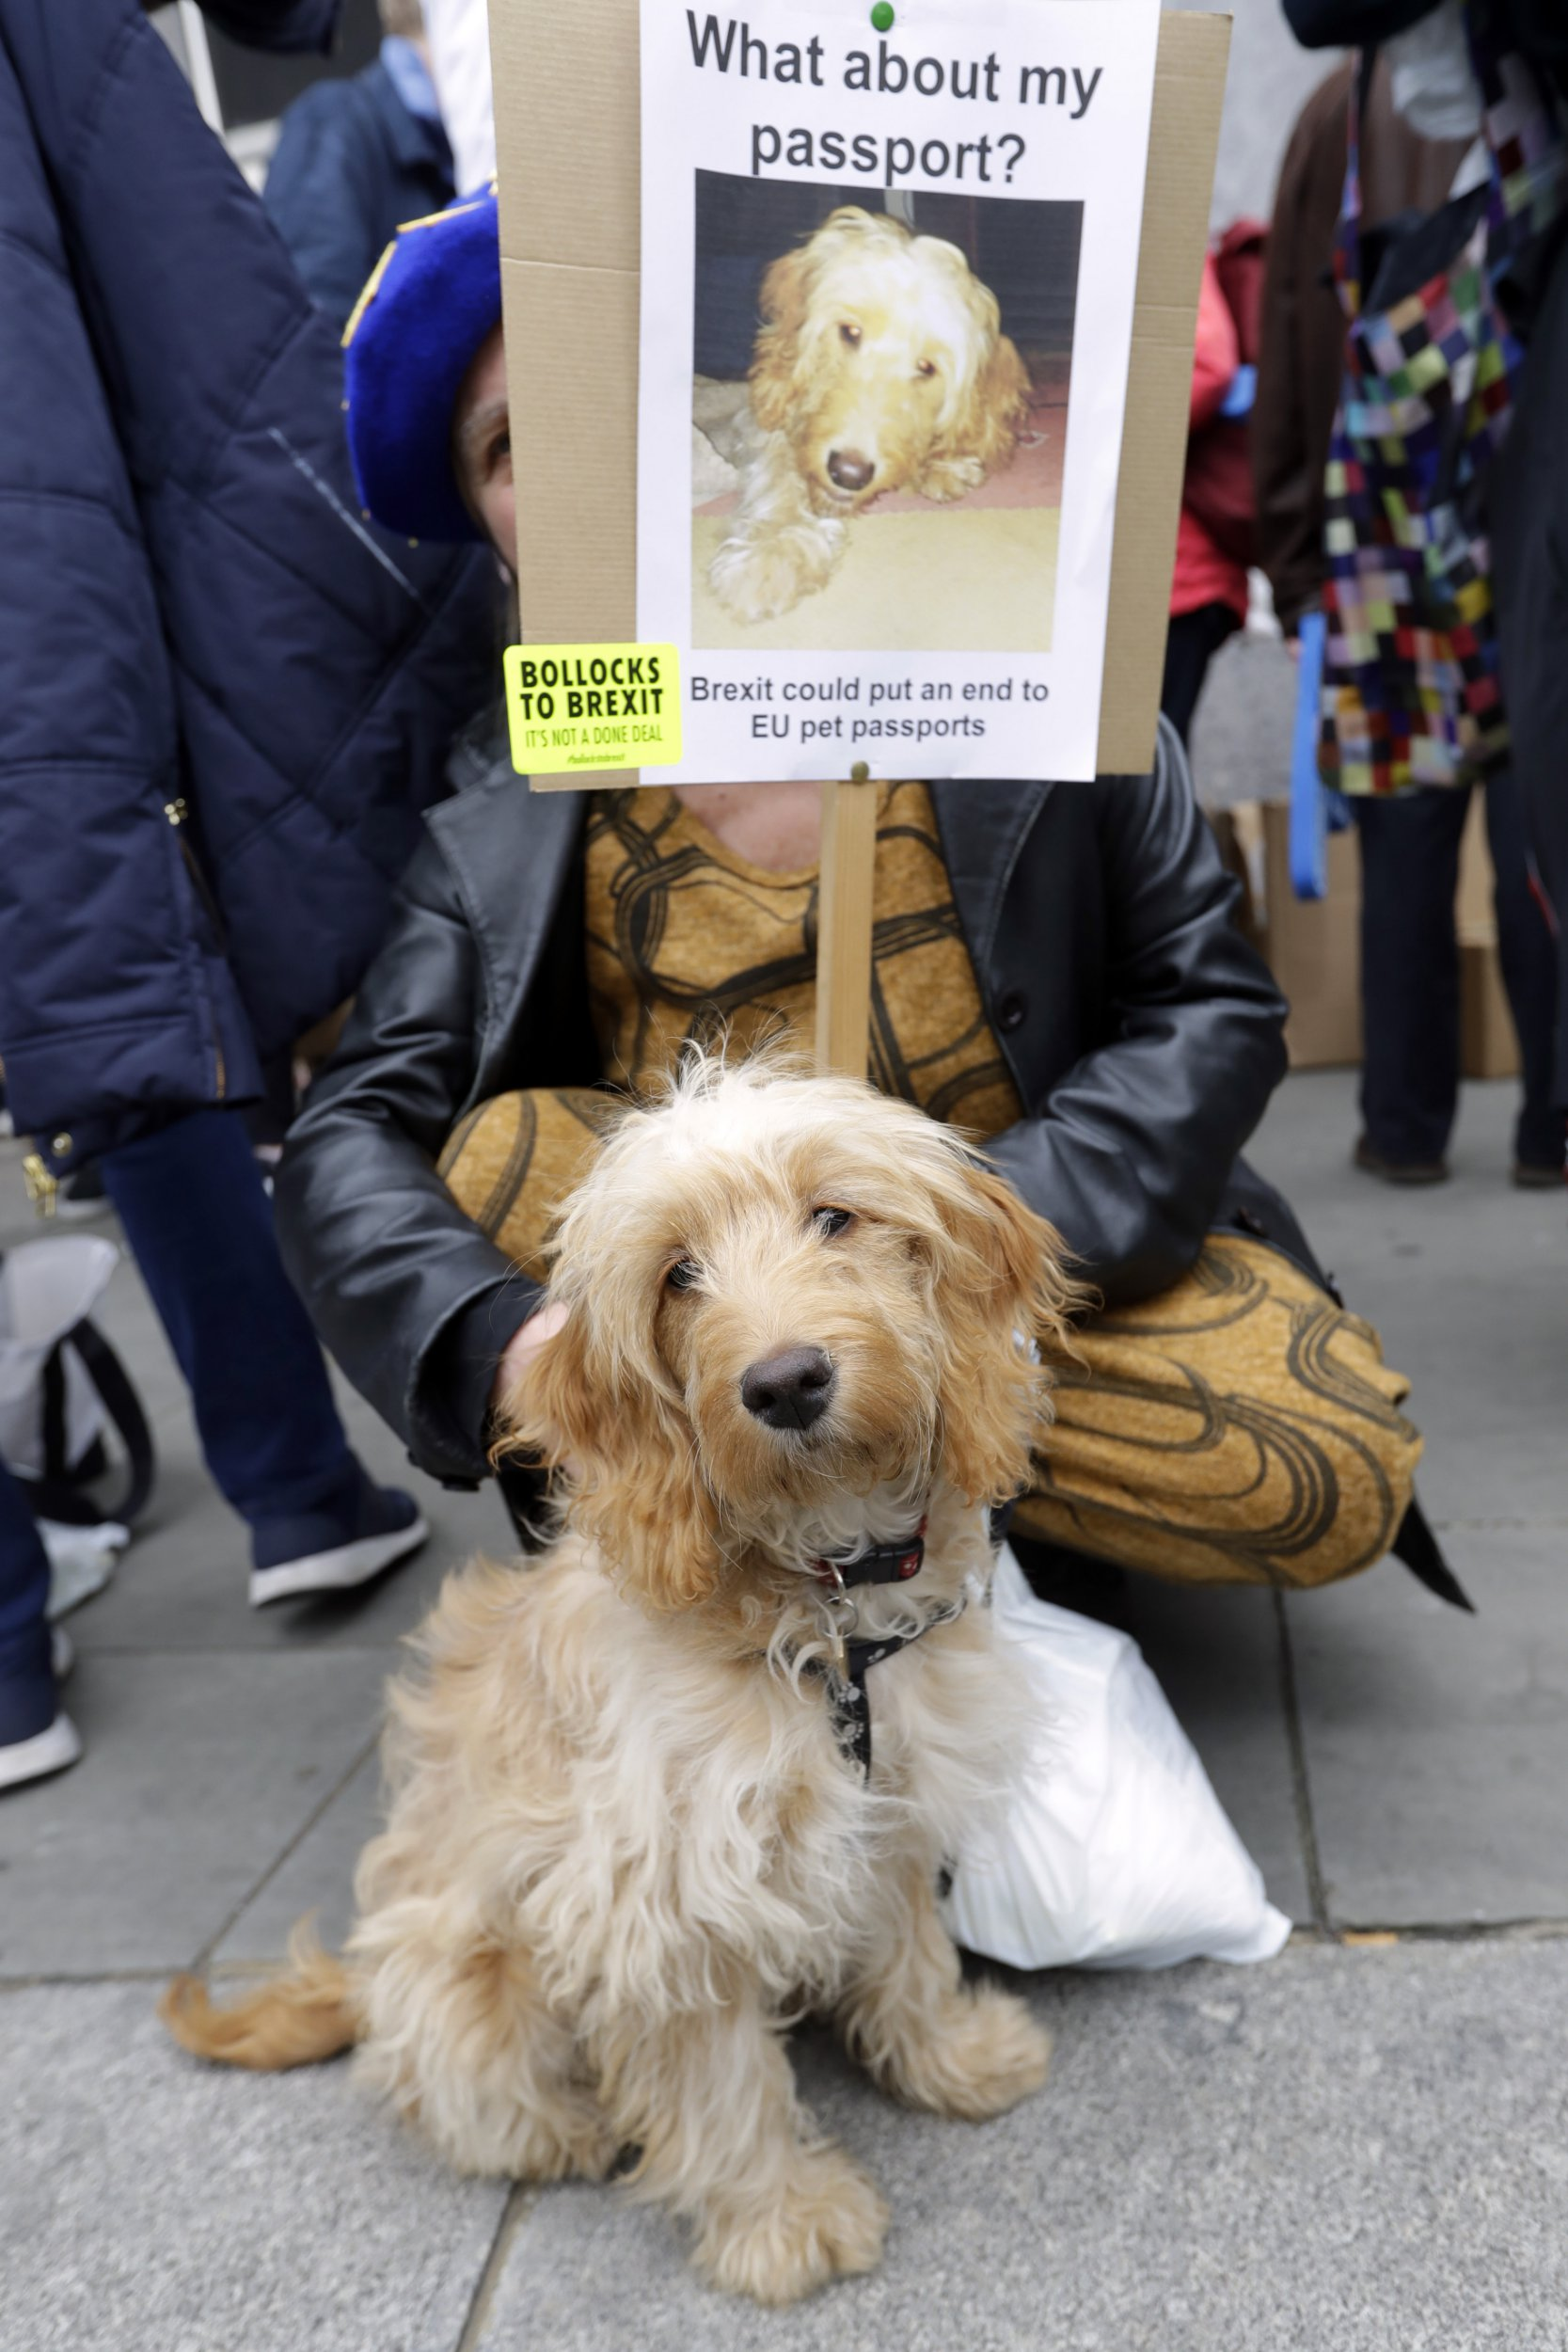 A demonstrator and her dog wait for the start of a Peoples Vote anti-Brexit march in London, Saturday, March 23, 2019. The march, organized by the People's Vote campaign is calling for a final vote on any proposed Brexit deal. This week the EU has granted Britain's Prime Minister Theresa May a delay to the Brexit process. (AP Photo/Kirsty Wigglesworth)